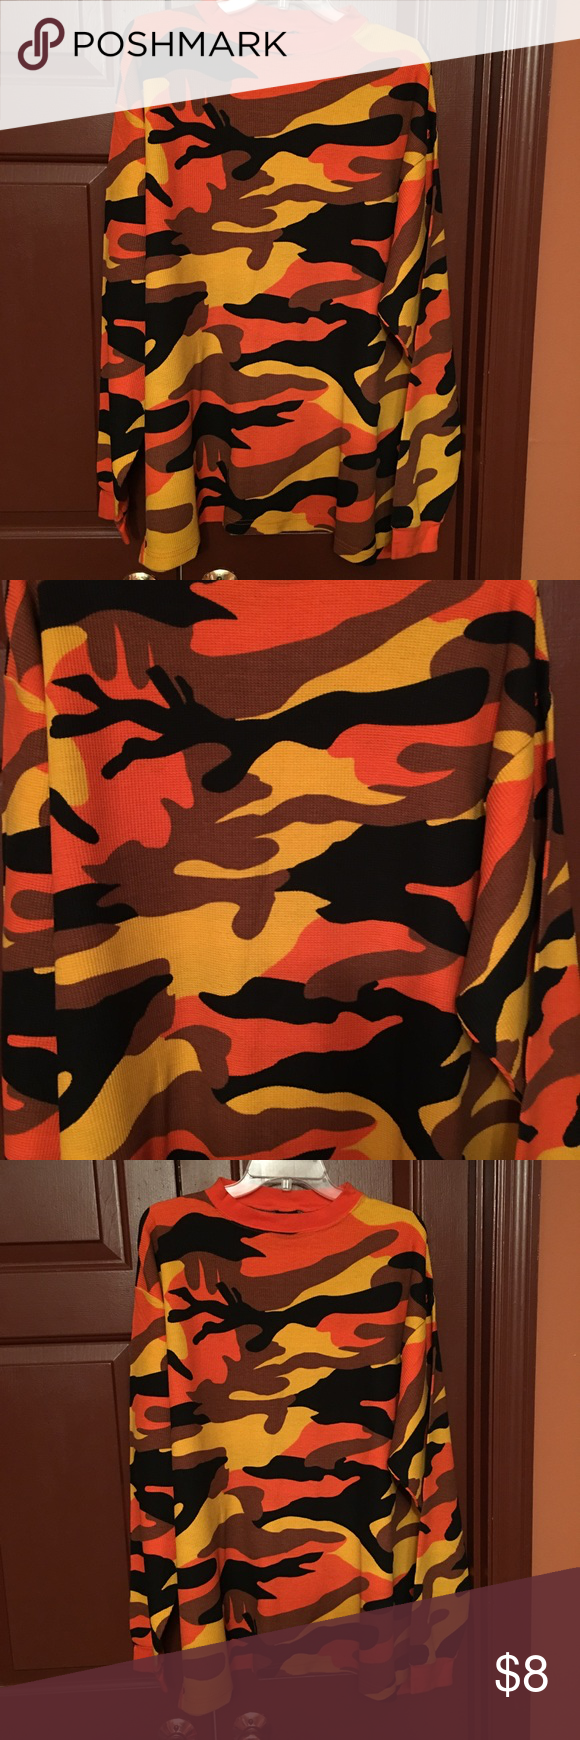 Men's Camo Thermal Shirt Men's long sleeve Camo thermal size XL in good condition worn twice, great colors (yellow/orange/brown/and black) Shirts Tees - Long Sleeve